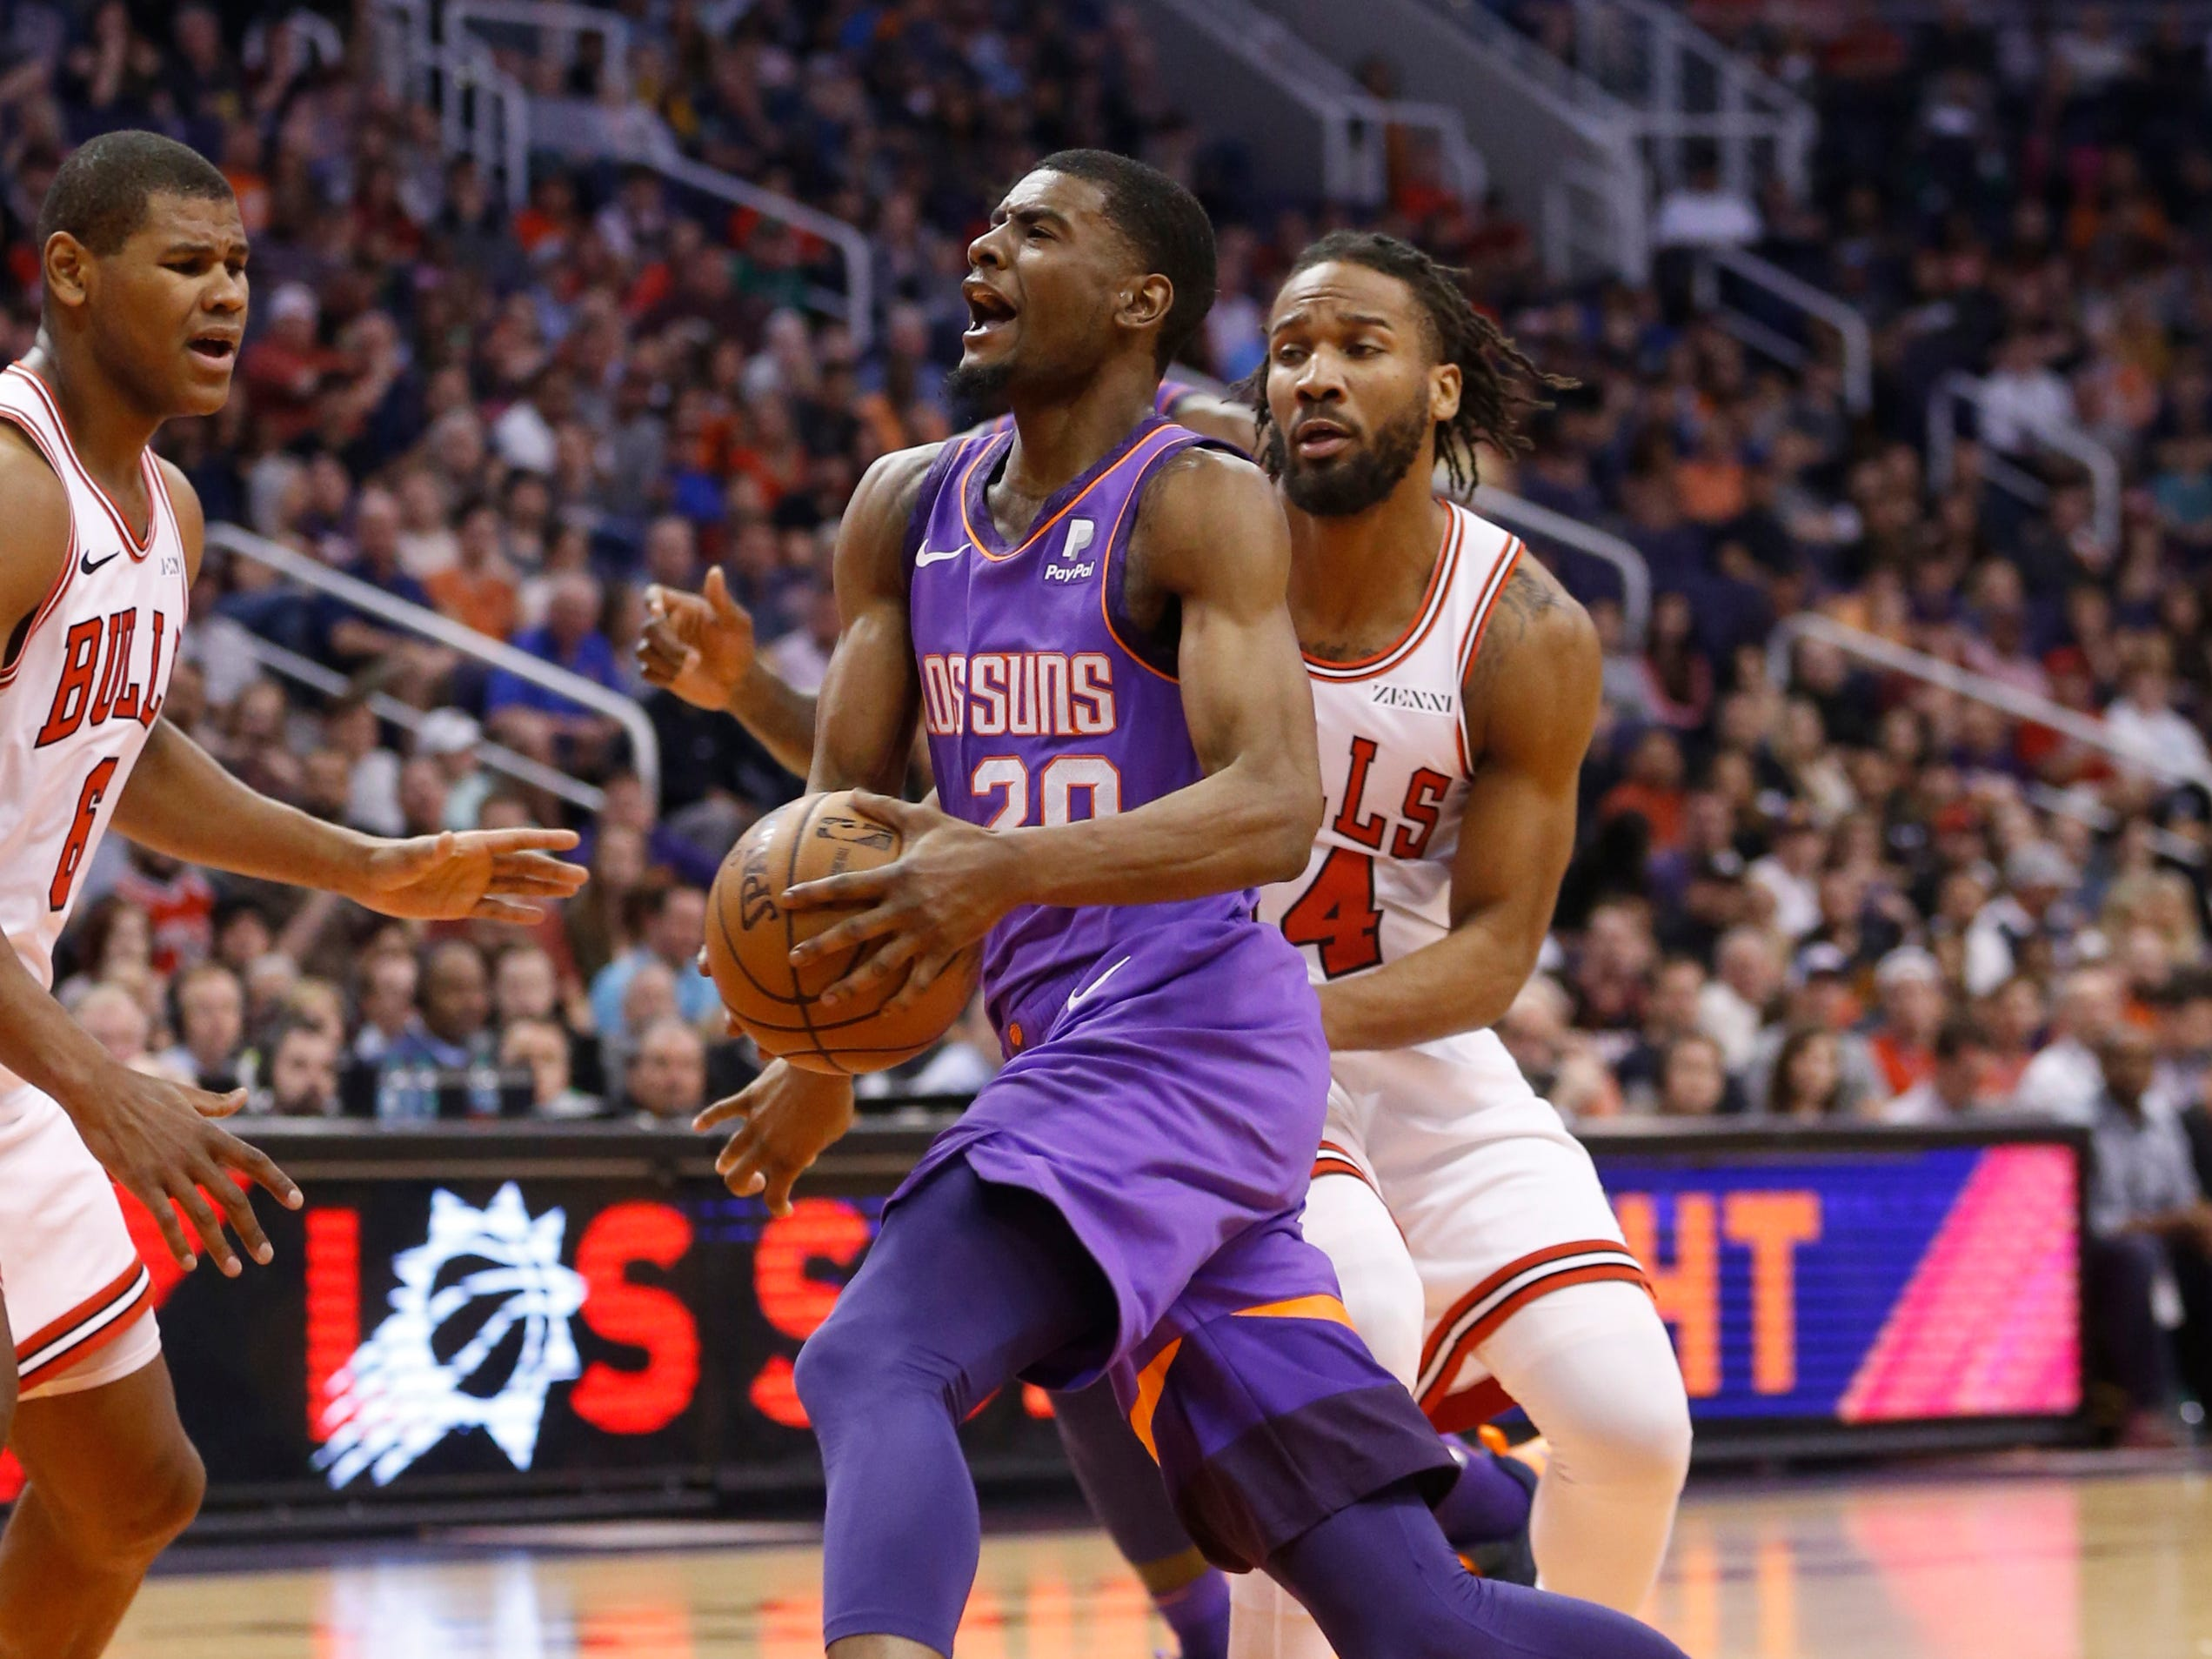 Suns' Josh Jackson (20) draws a shooting foul on Bulls' Wayne Sheldon Jr. during the second half at Talking Stick Resort Arena in Phoenix, Ariz. on March 18, 2019.